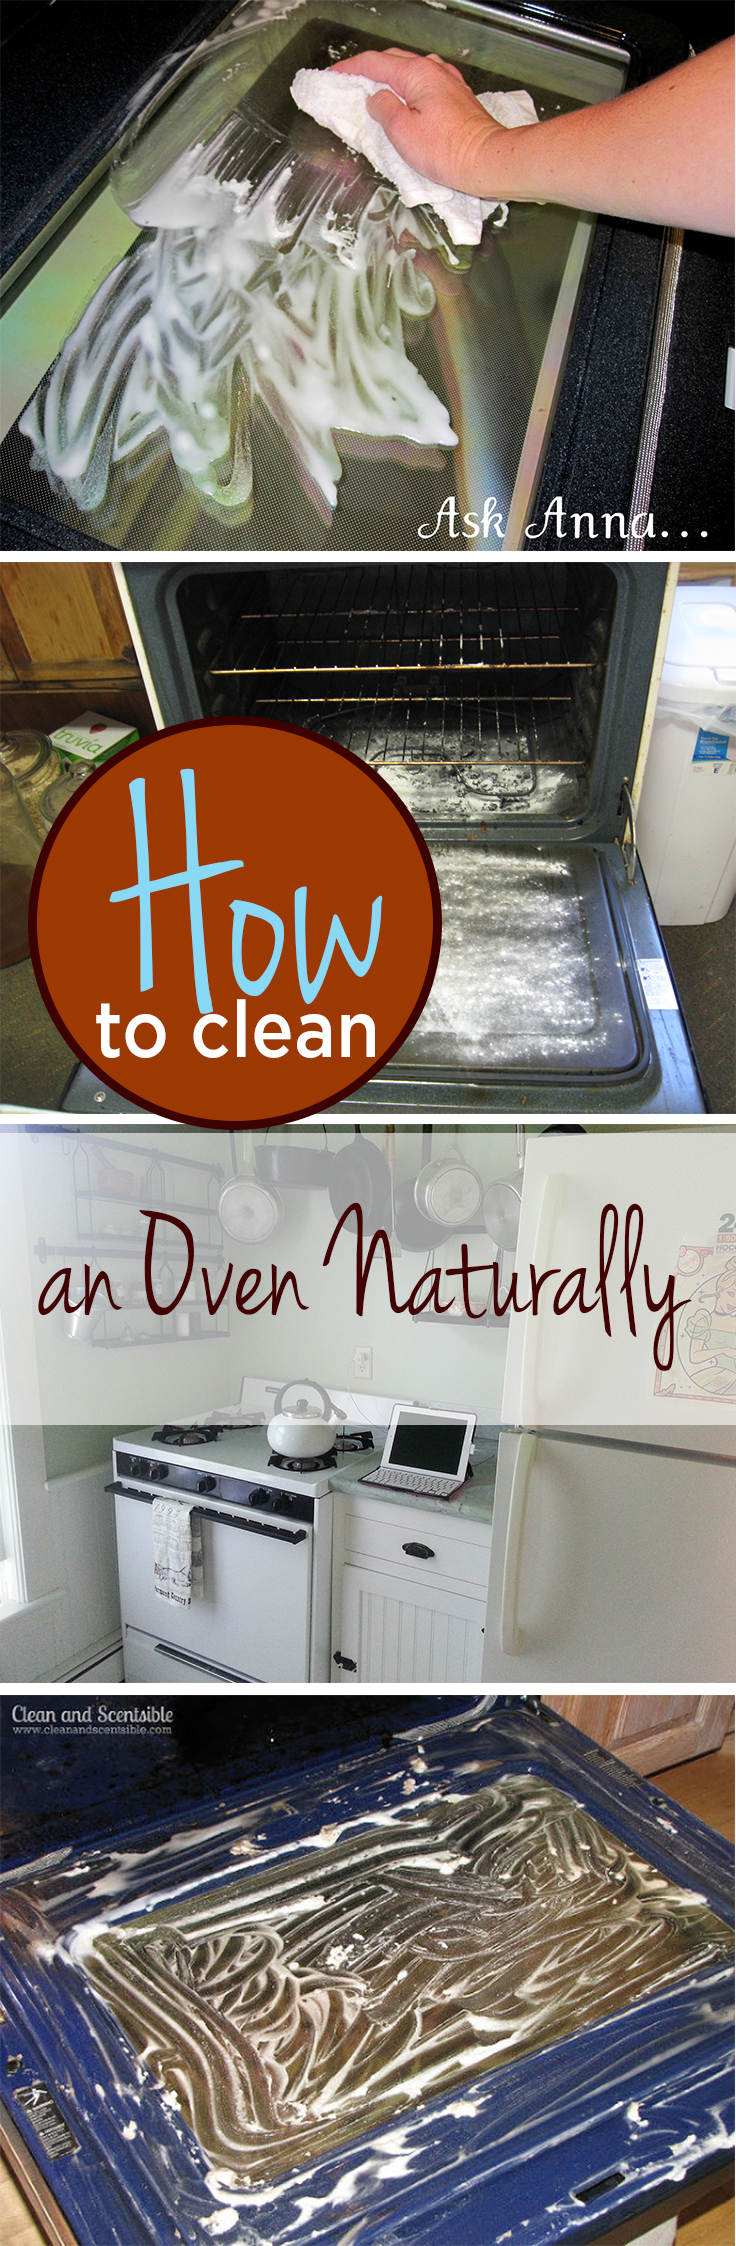 How to Clean an Oven Naturally